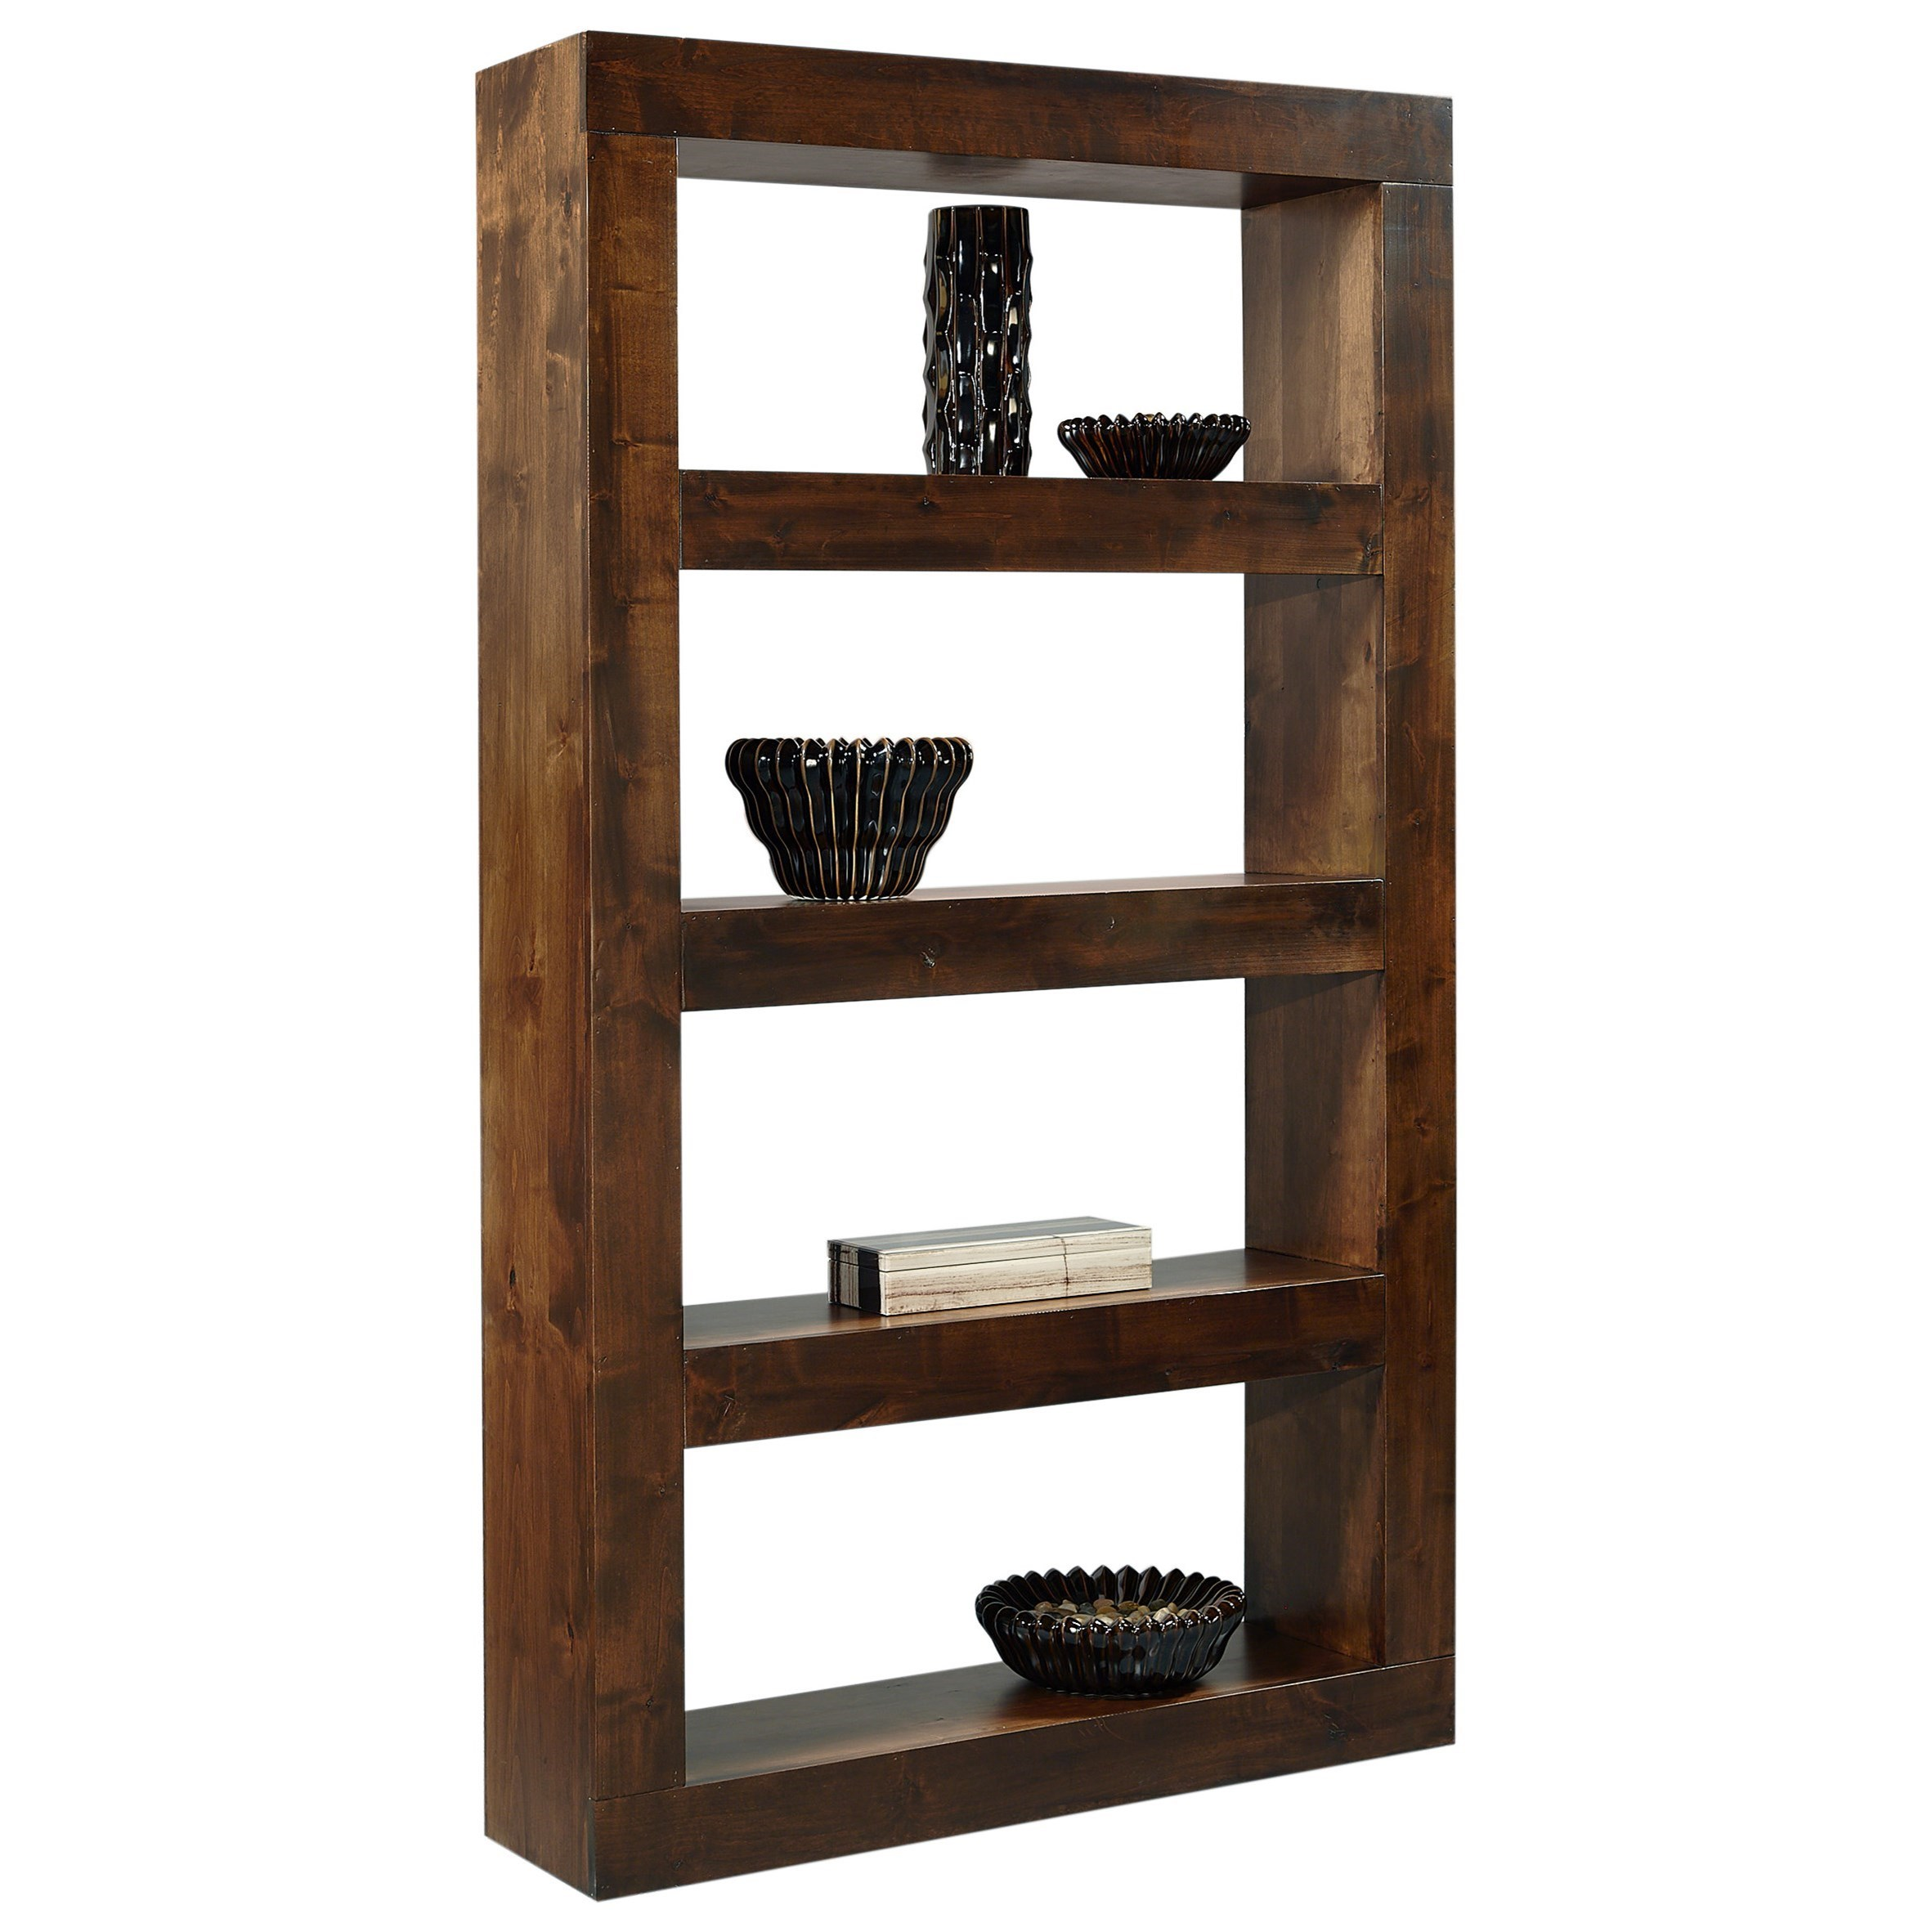 Nova Alder Open Display Case by Aspenhome at Stoney Creek Furniture